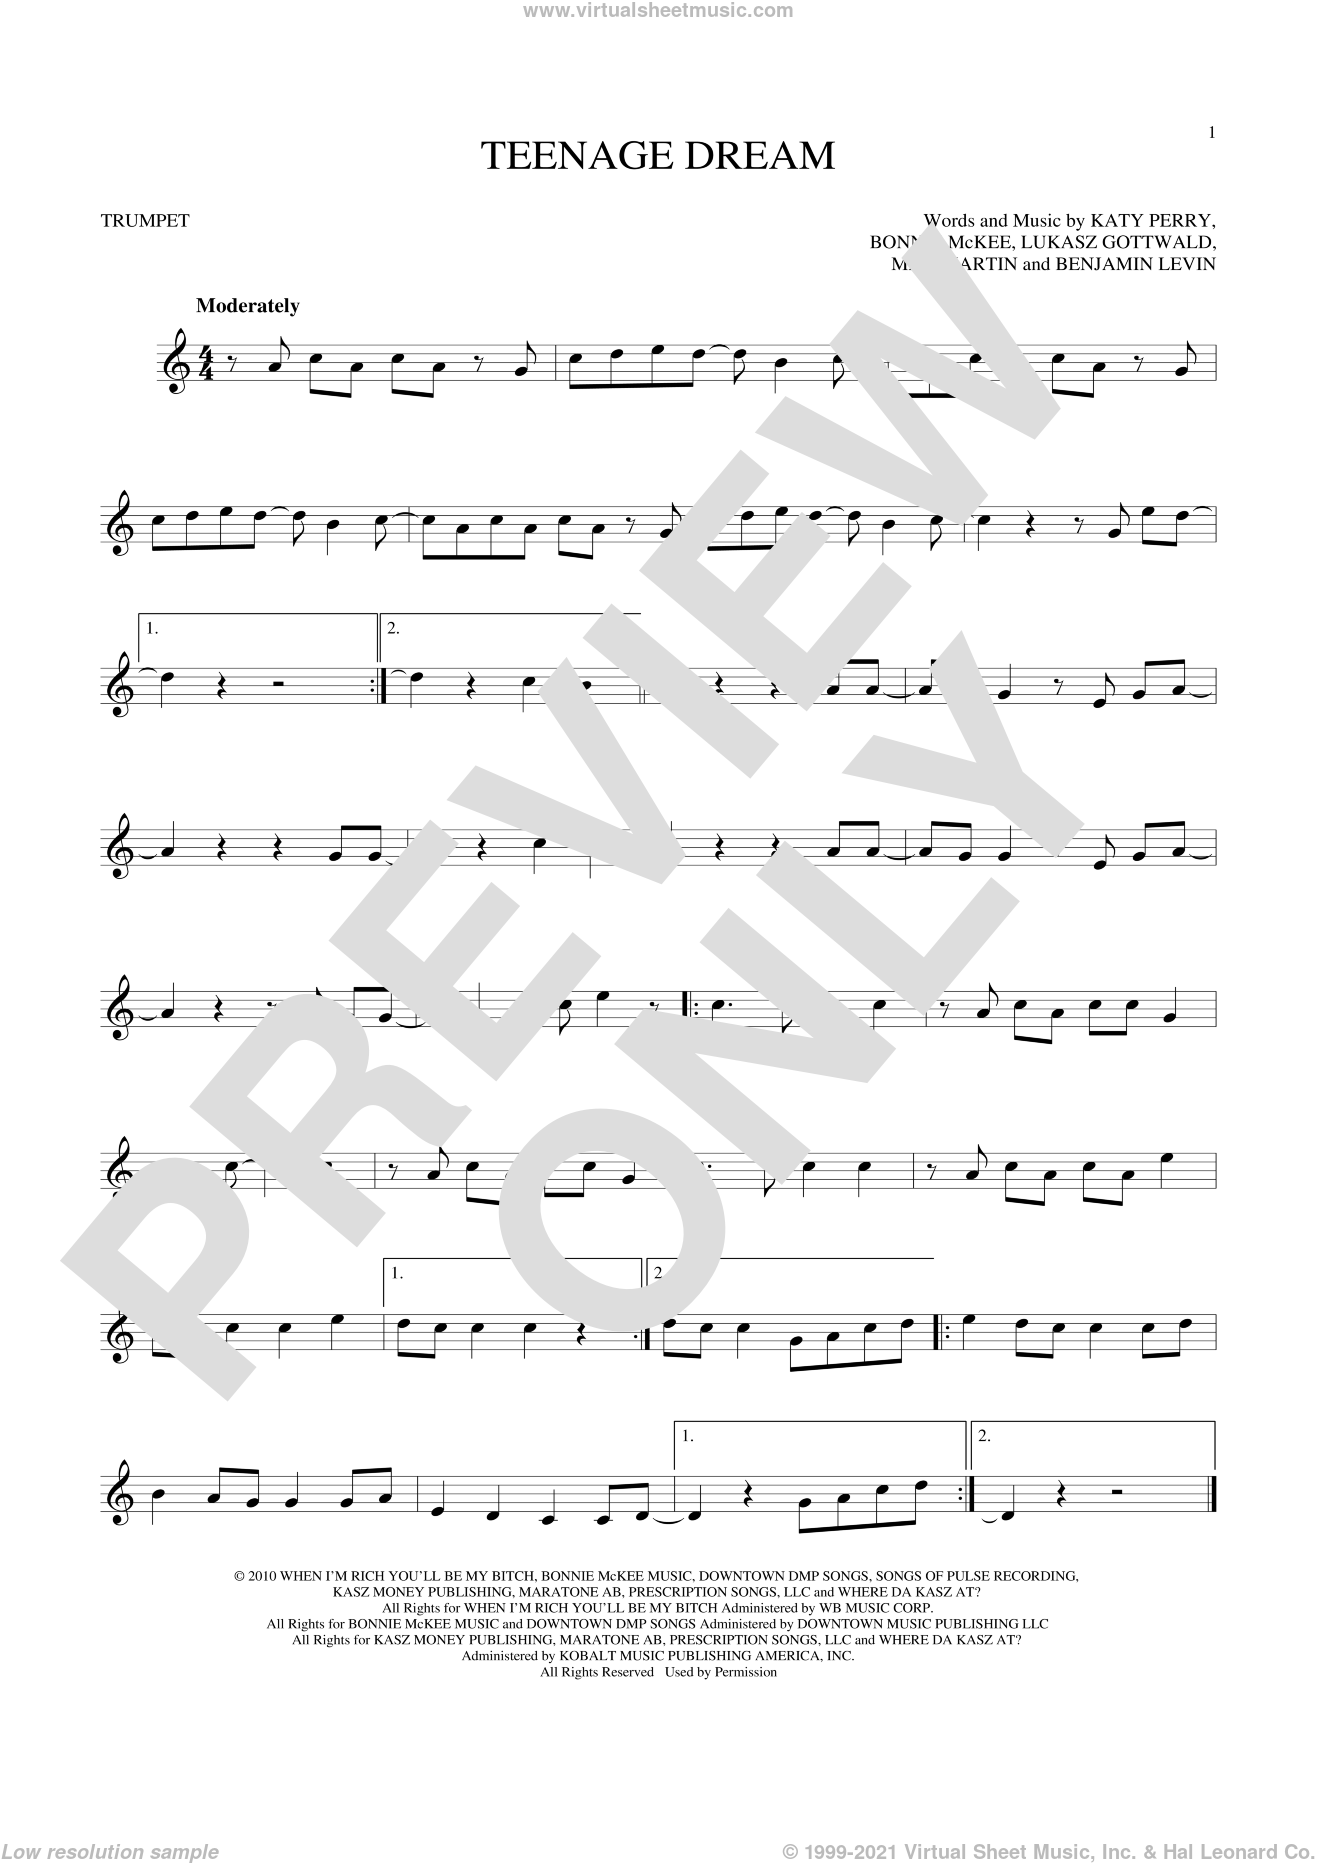 Teenage Dream sheet music for trumpet solo by Katy Perry, Benjamin Levin, Bonnie McKee, Lukasz Gottwald and Max Martin, intermediate skill level